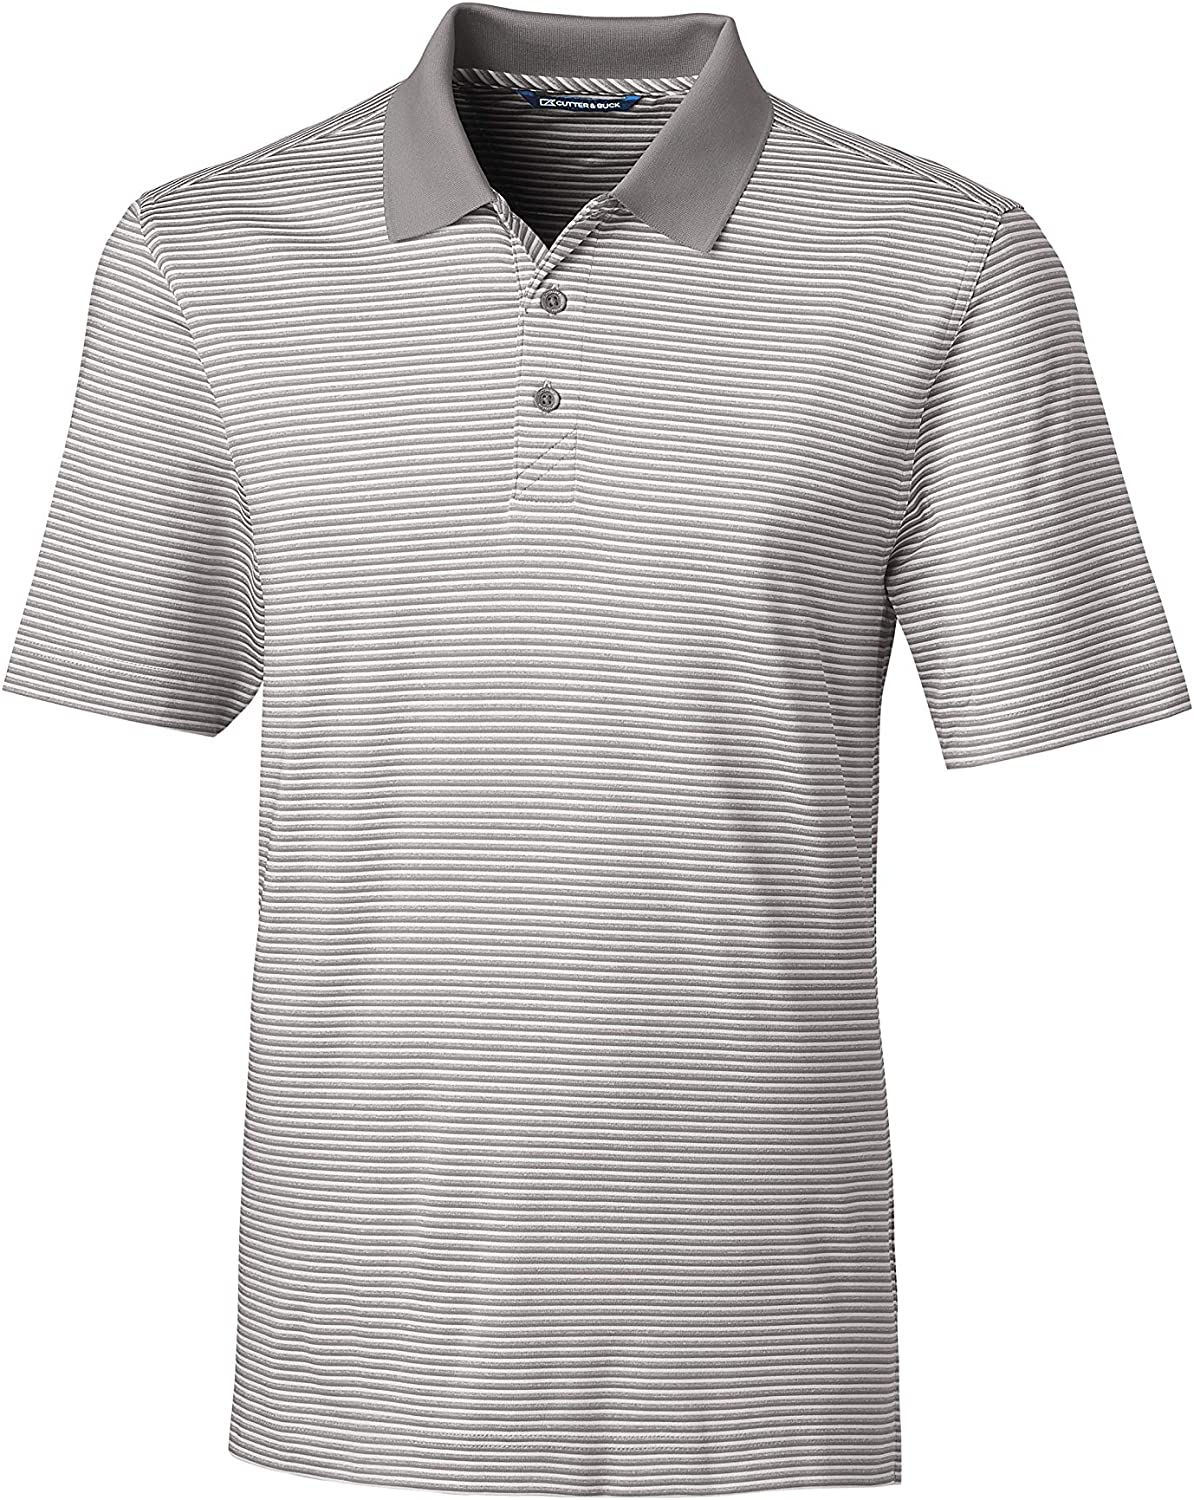 Cutter & Buck Men's Big and Tall Moisture Wicking Drytec UPF 50 Forge Tonal Stripe Polo Shirt